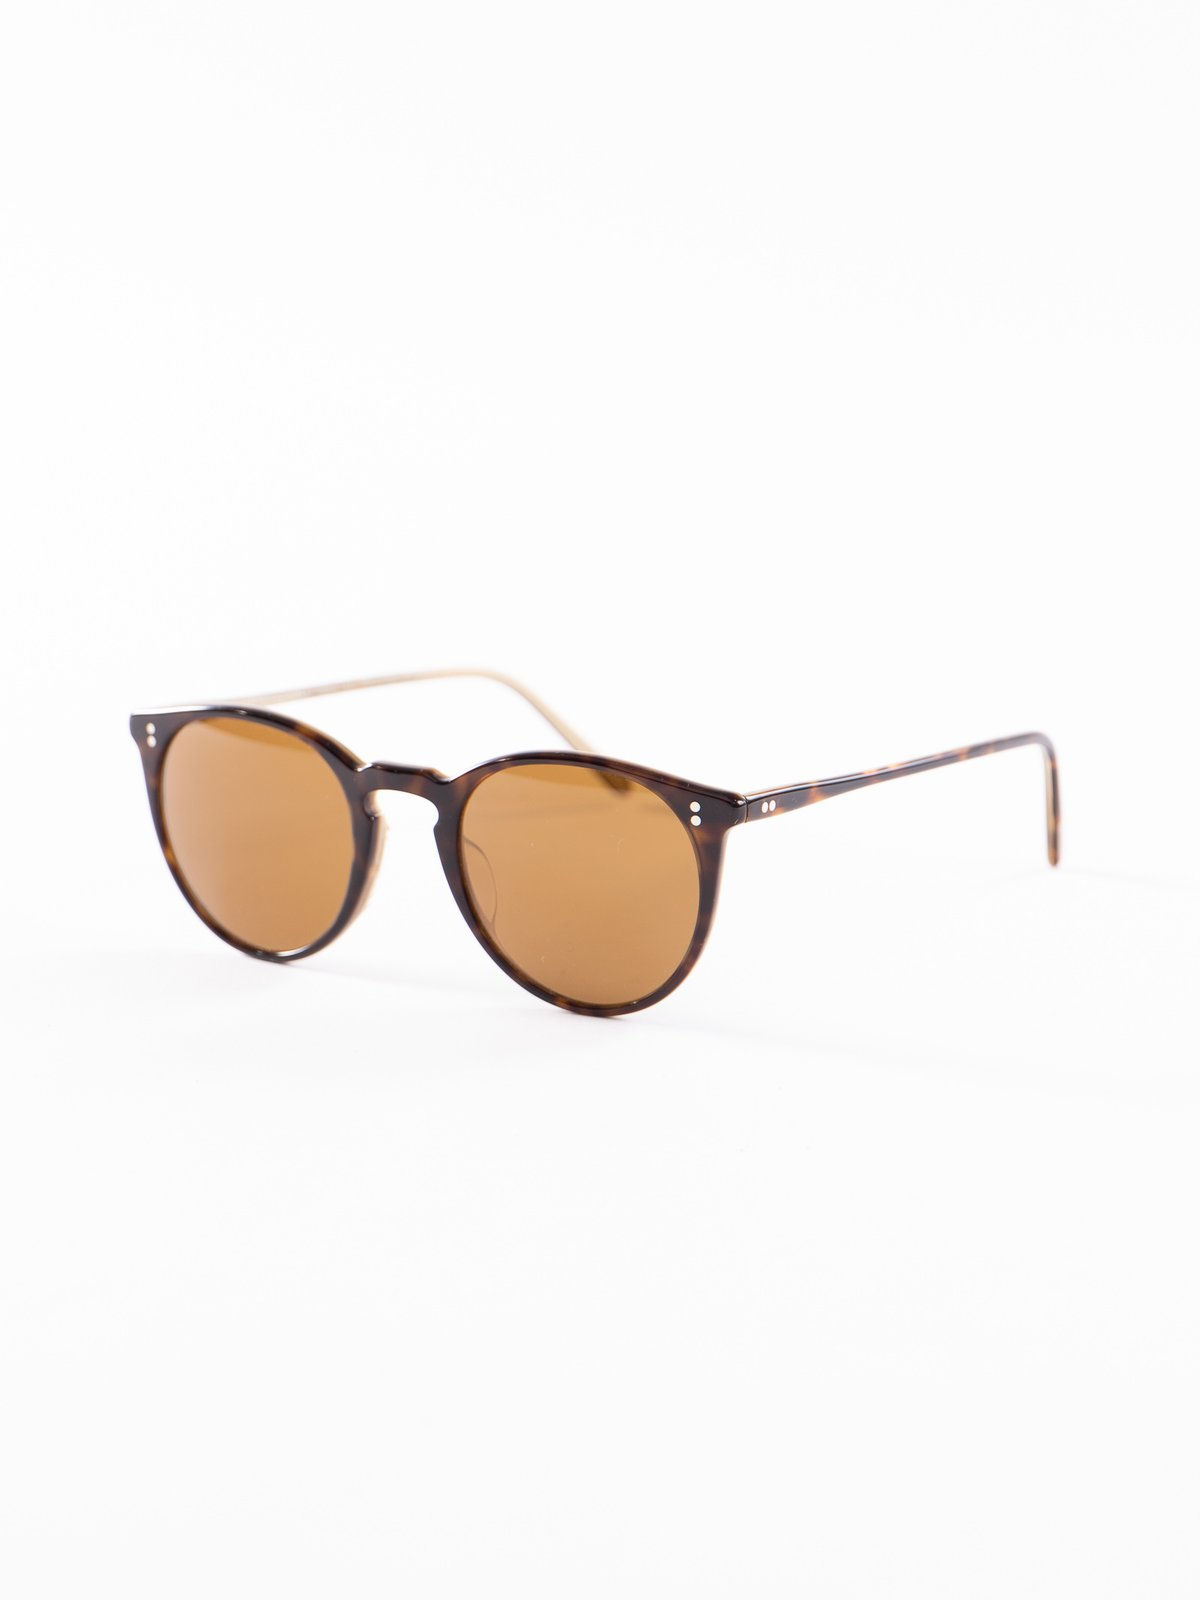 362–Horn/Brown O'Malley Sunglasses - Image 2